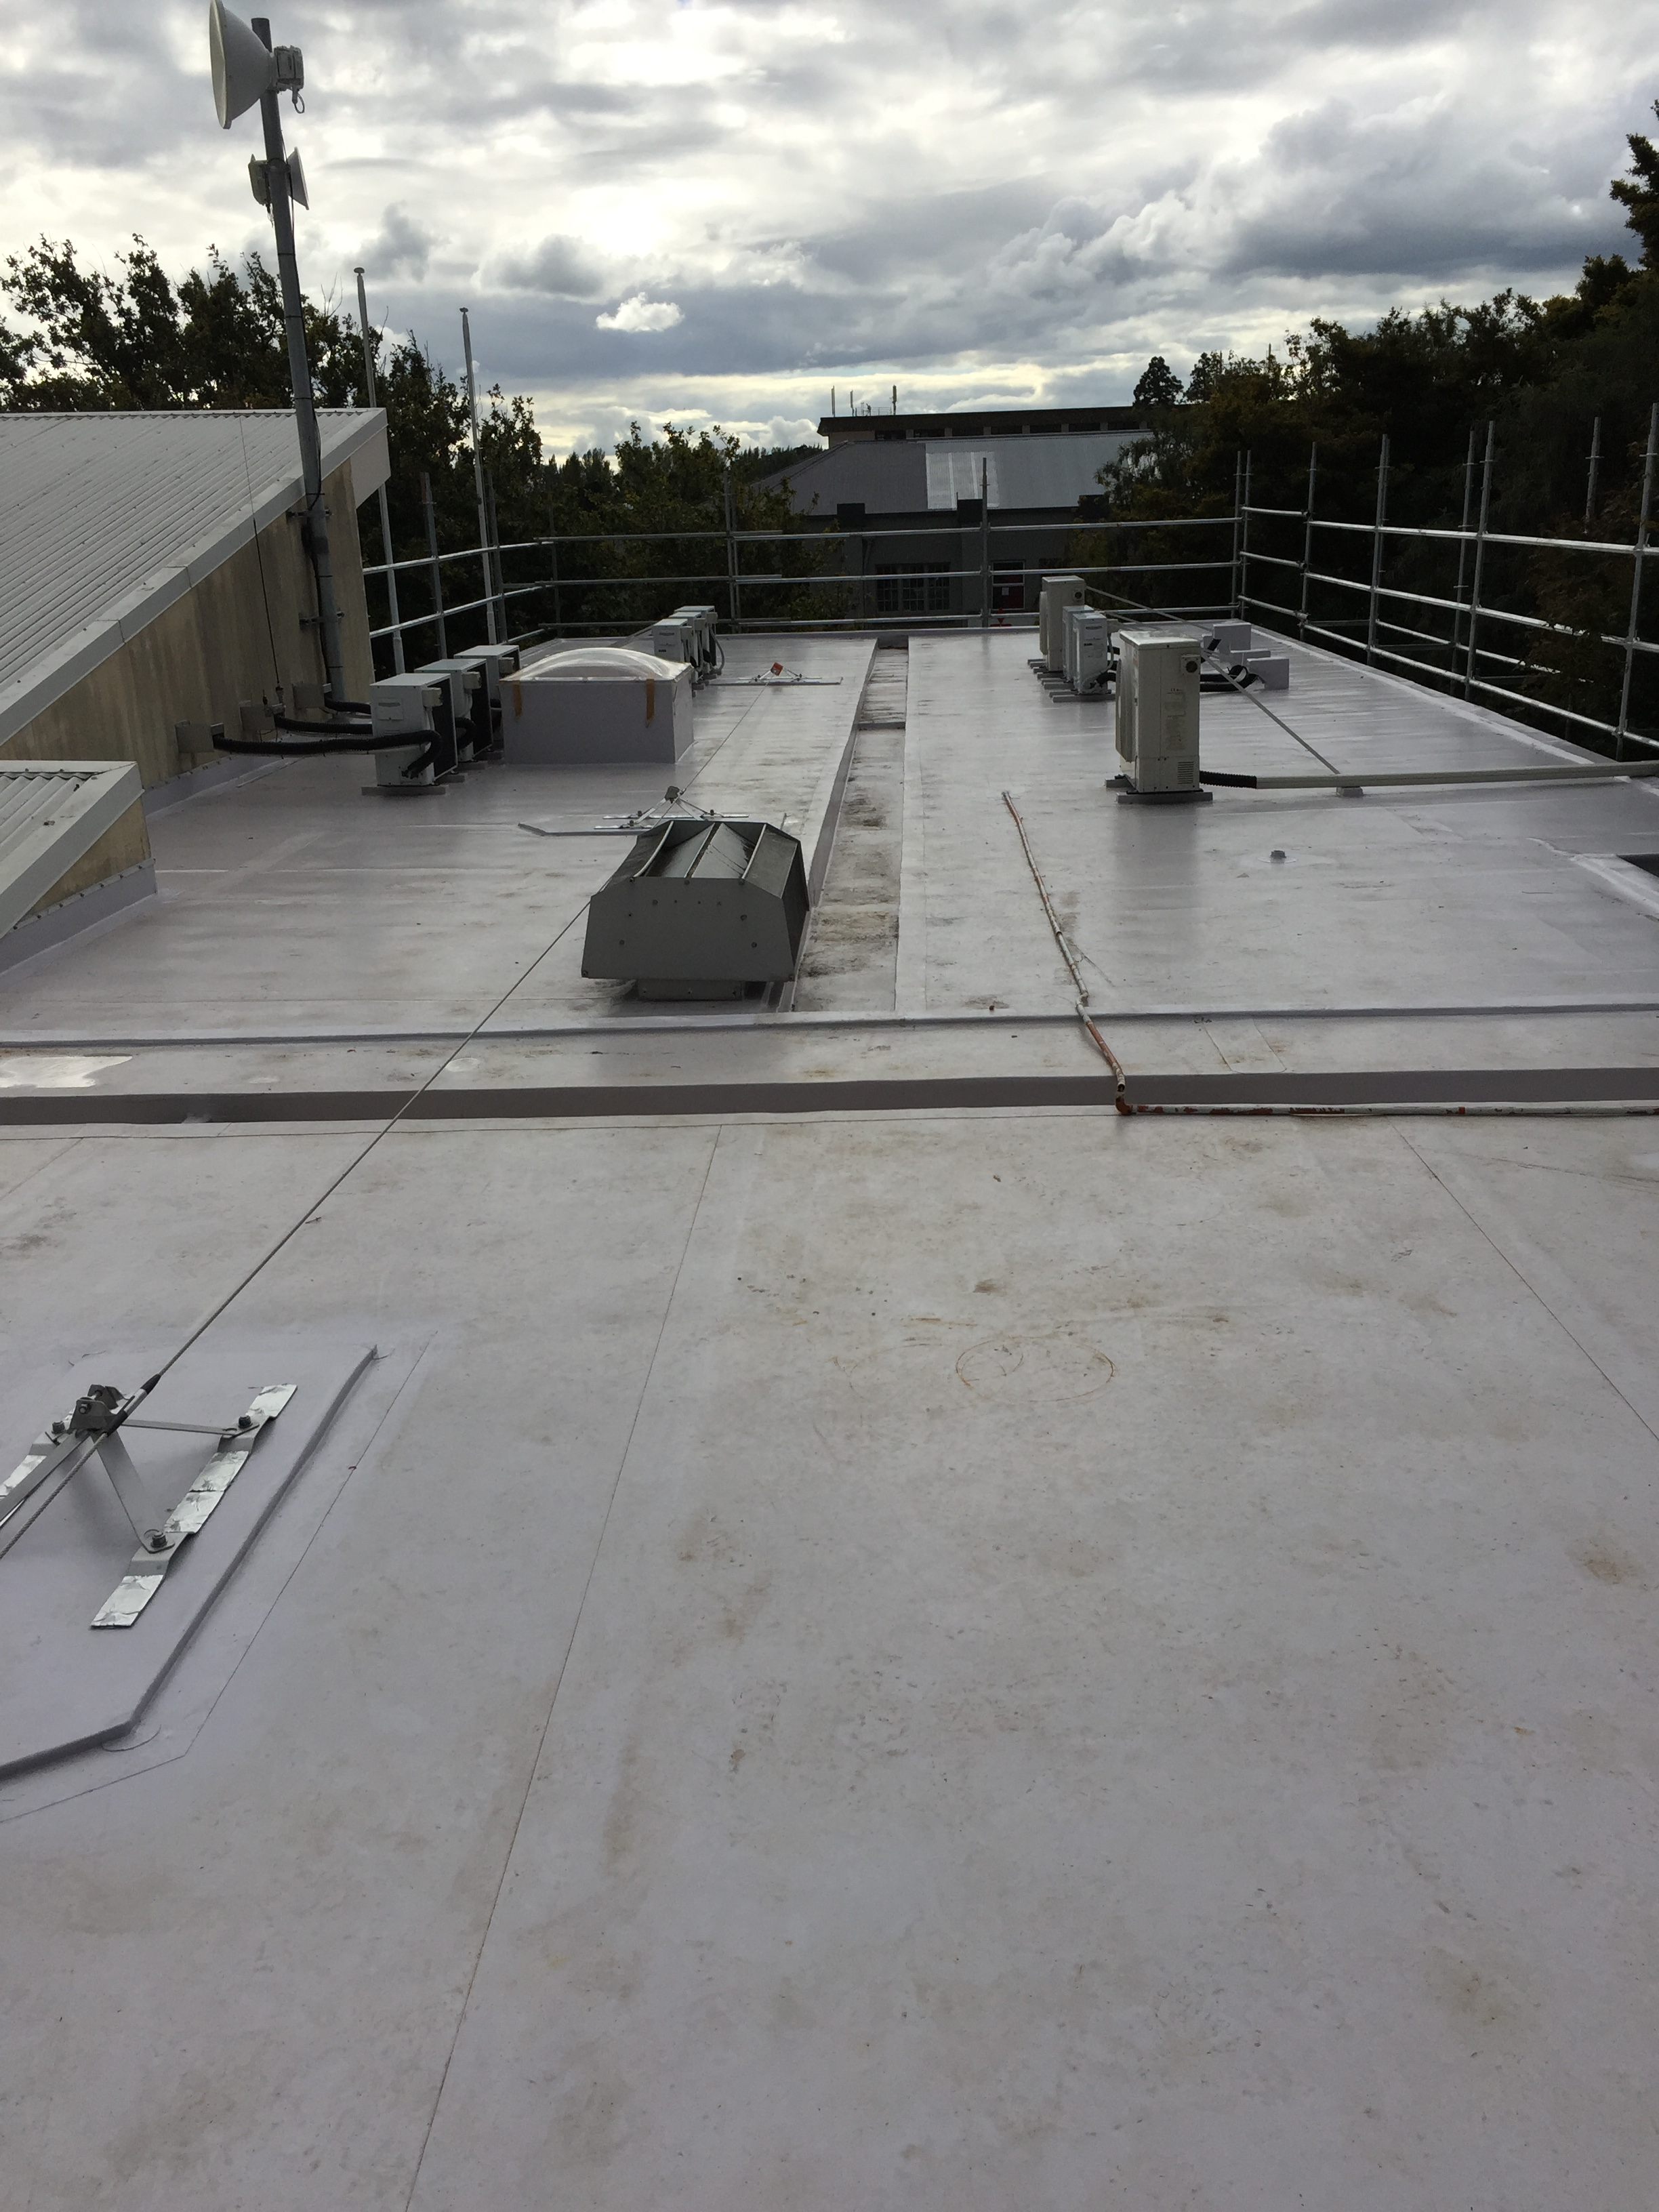 North - Building remained a safe working environment, weather-tight and fully operational